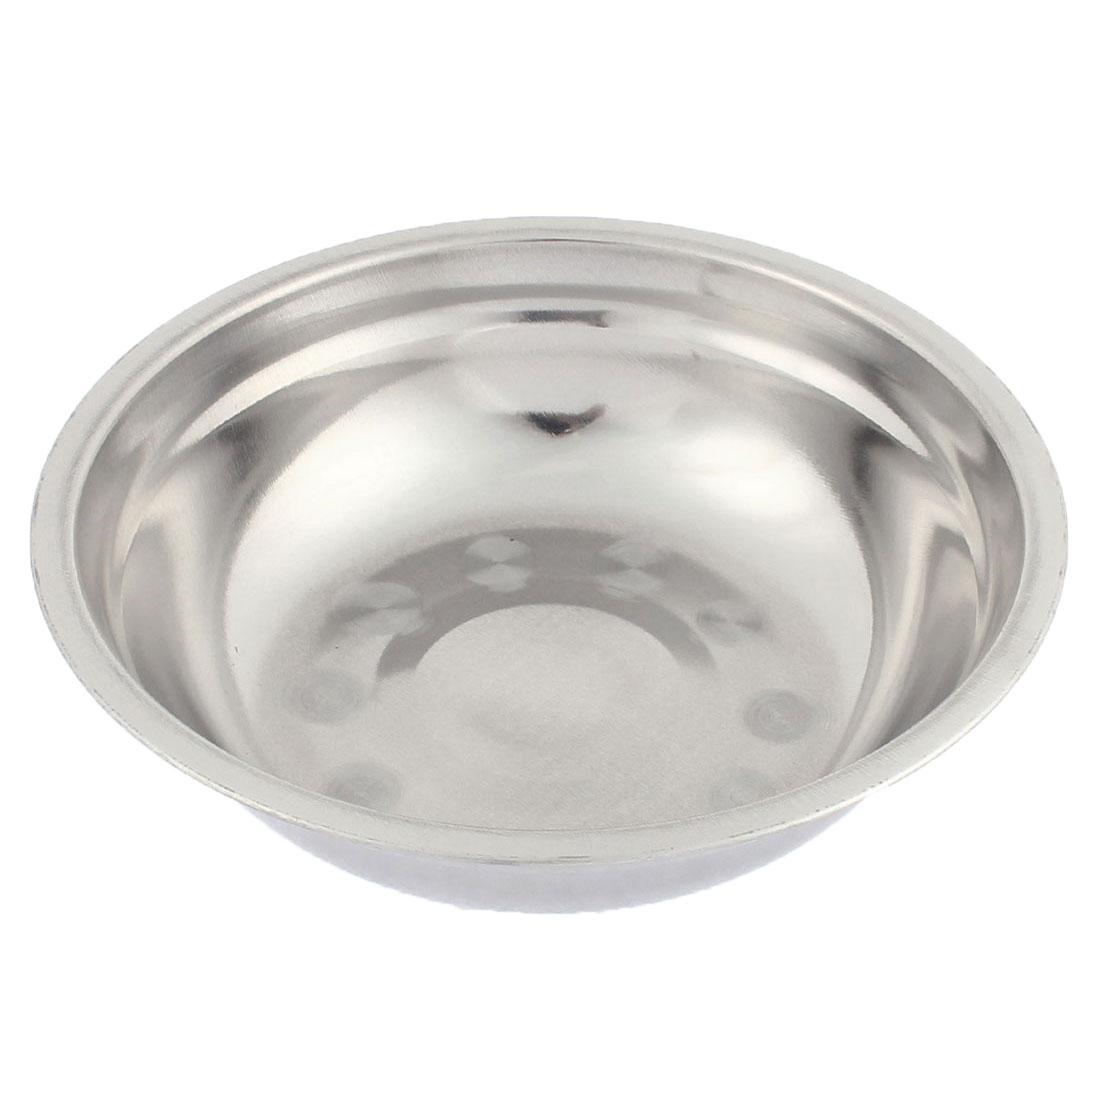 Cookware Round Shape Stainless Steel Food Soup Dinner Bowl